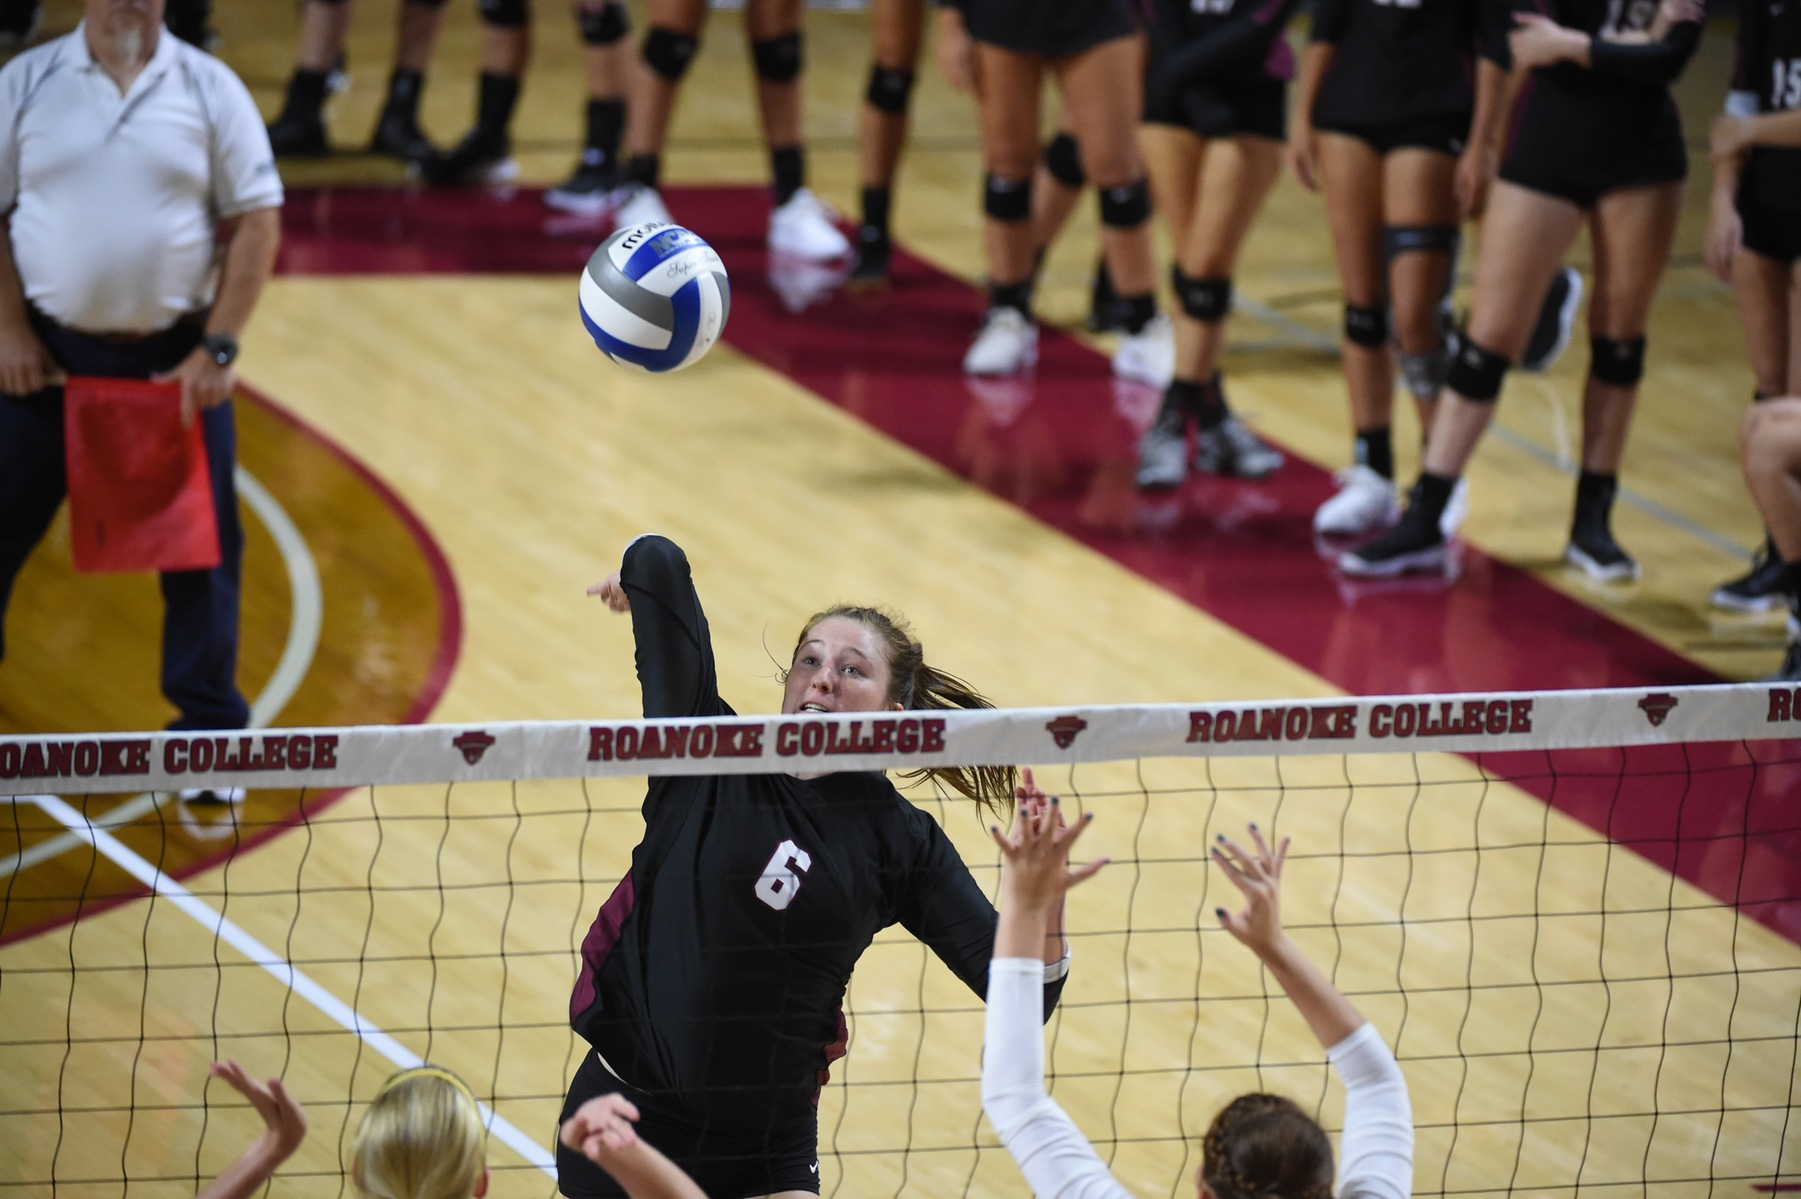 Washington and Lee knocked off Roanoke 3-0 Tuesday night in ODAC volleyball.